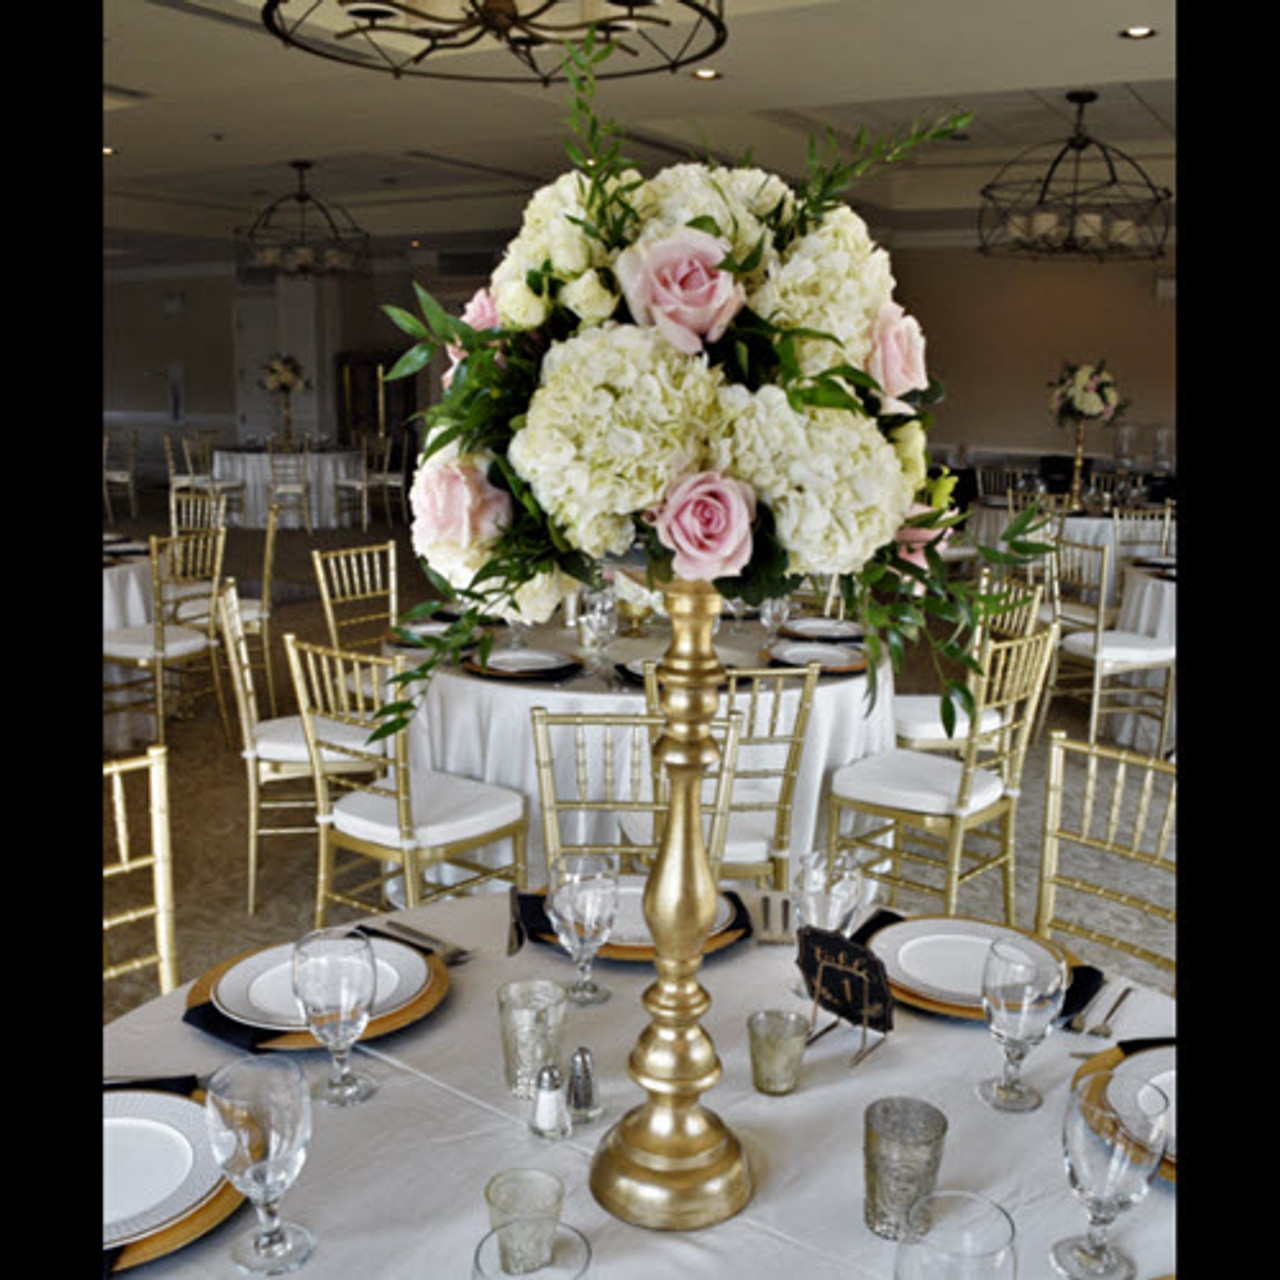 Wondrous Tall Hydrangea Rose Centerpiece On Customer Provided Riser Gold Riser In Photo Not Included Download Free Architecture Designs Scobabritishbridgeorg